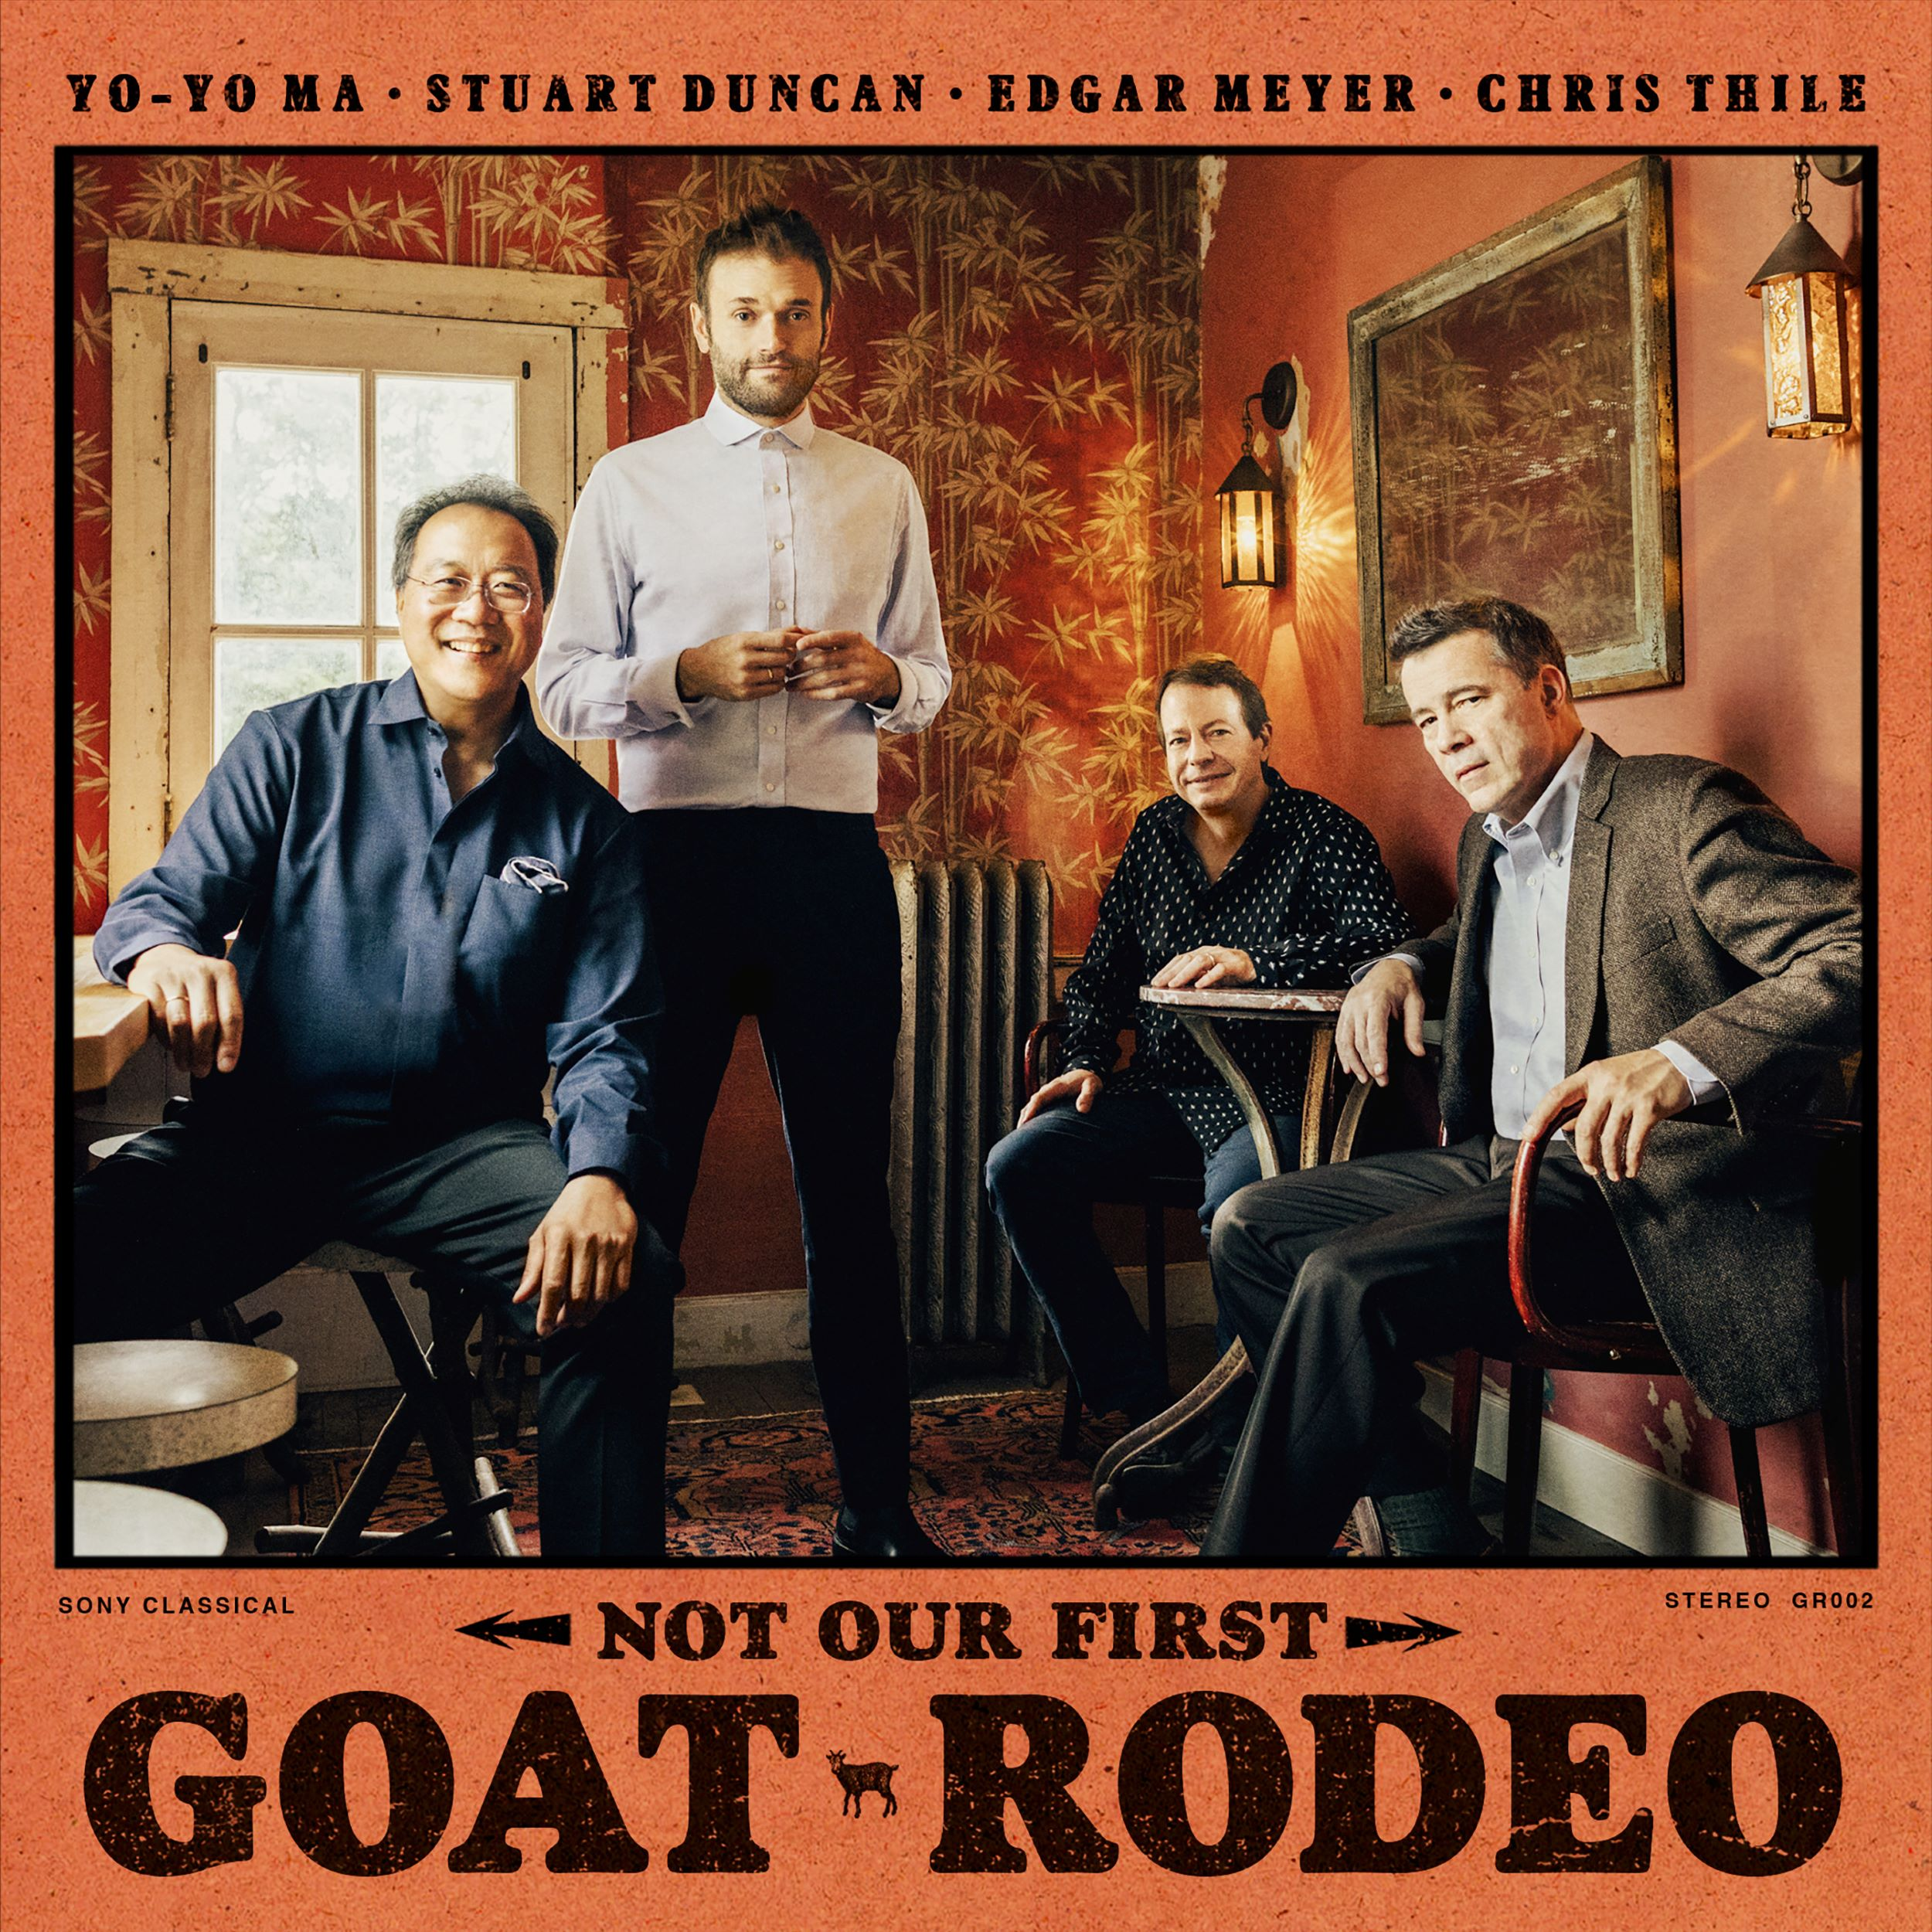 NOT OUR FIRST GOAT RODEO OUT NOW